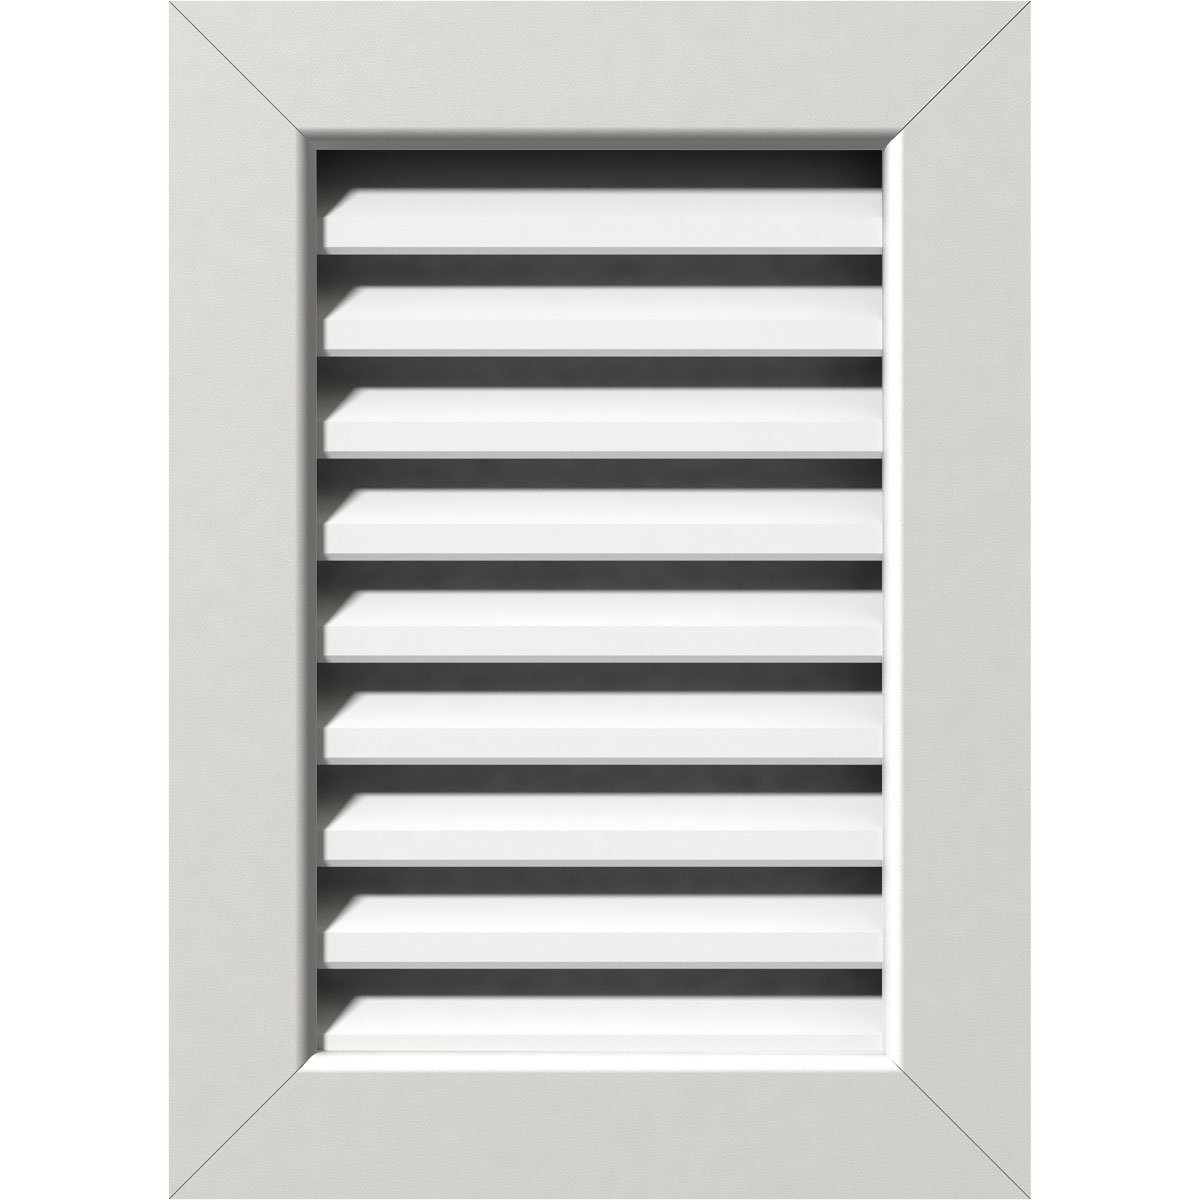 Ekena Millwork GVPVE12X1601FUN 12'' W x 16'' H Rough Opening, Vertical Gable Vent (17'' W x 21'' H Frame Size): Unfinished, Functional, PVC Gable Vent with 1'' x 4'' Flat Trim Frame